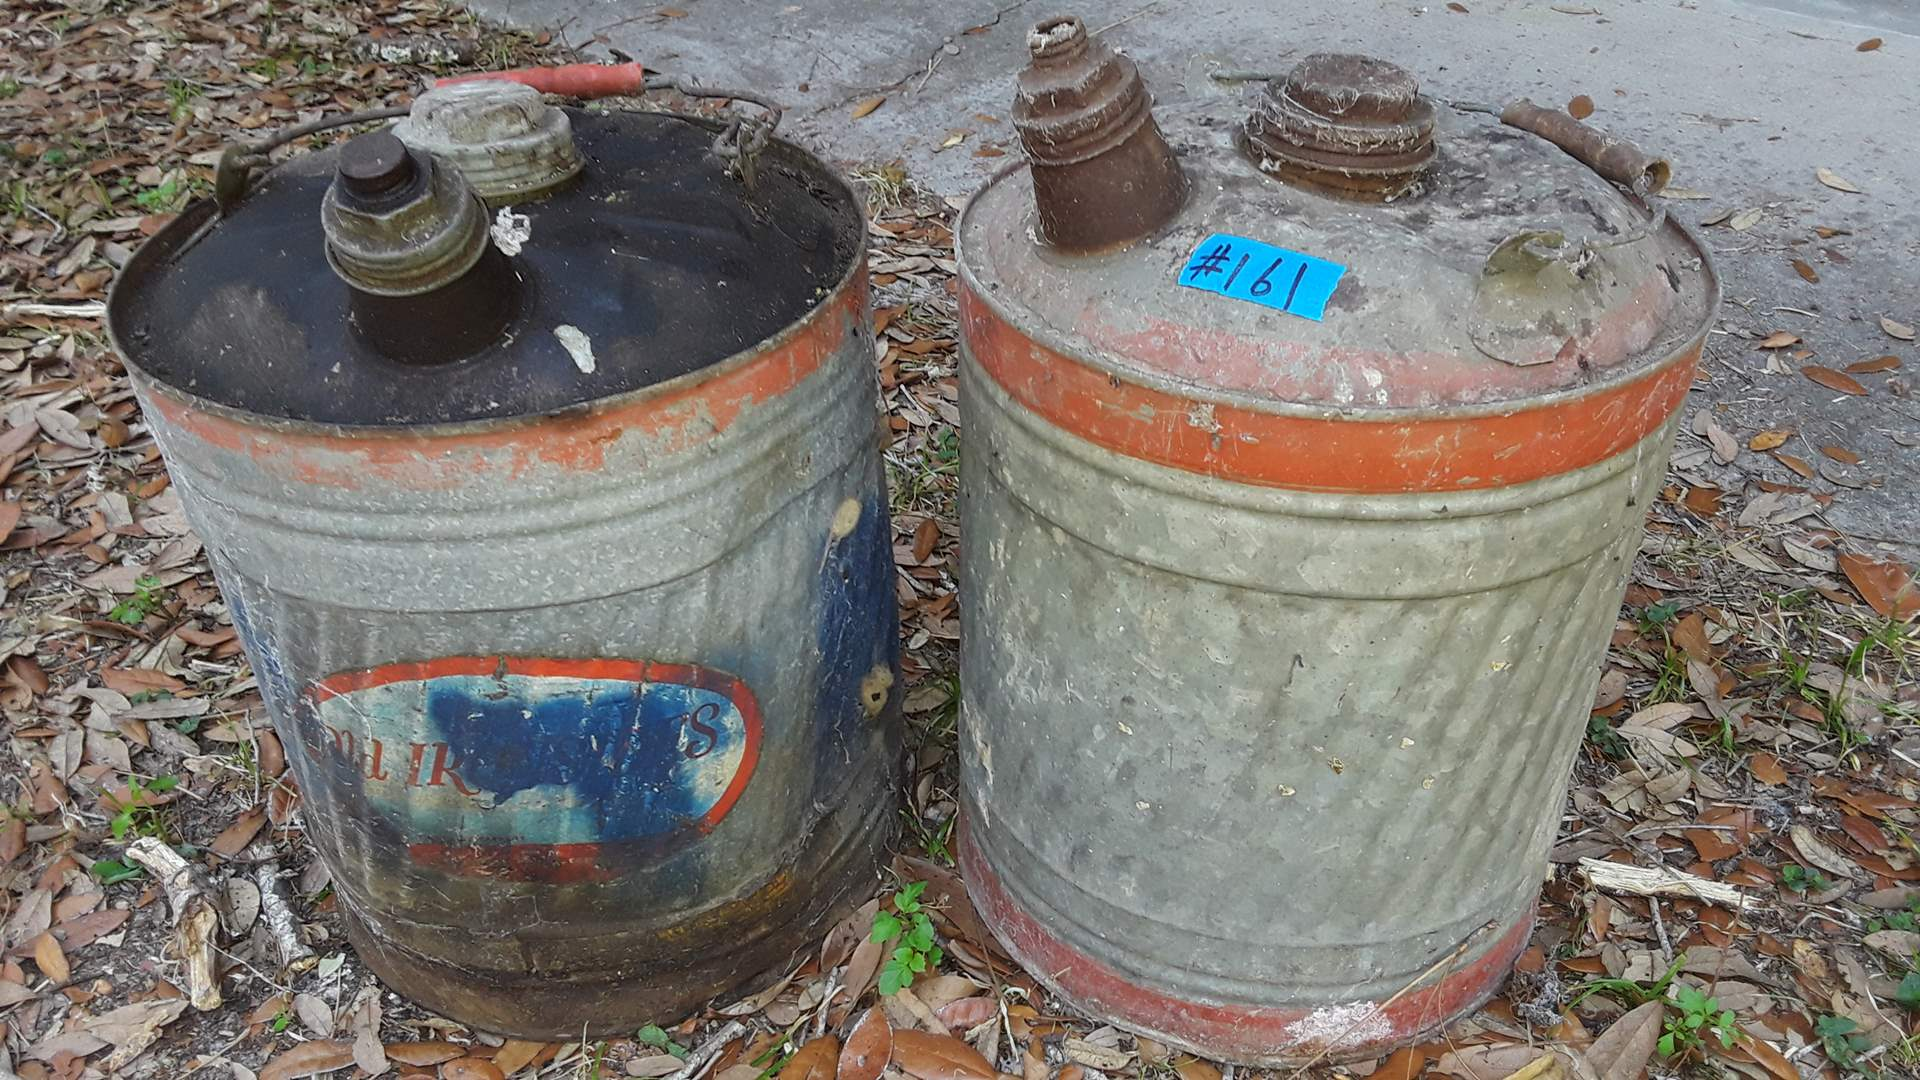 Lot # 161 - 2 LARGE GALVANIZED GAS CANS, OLD IRONSIDES